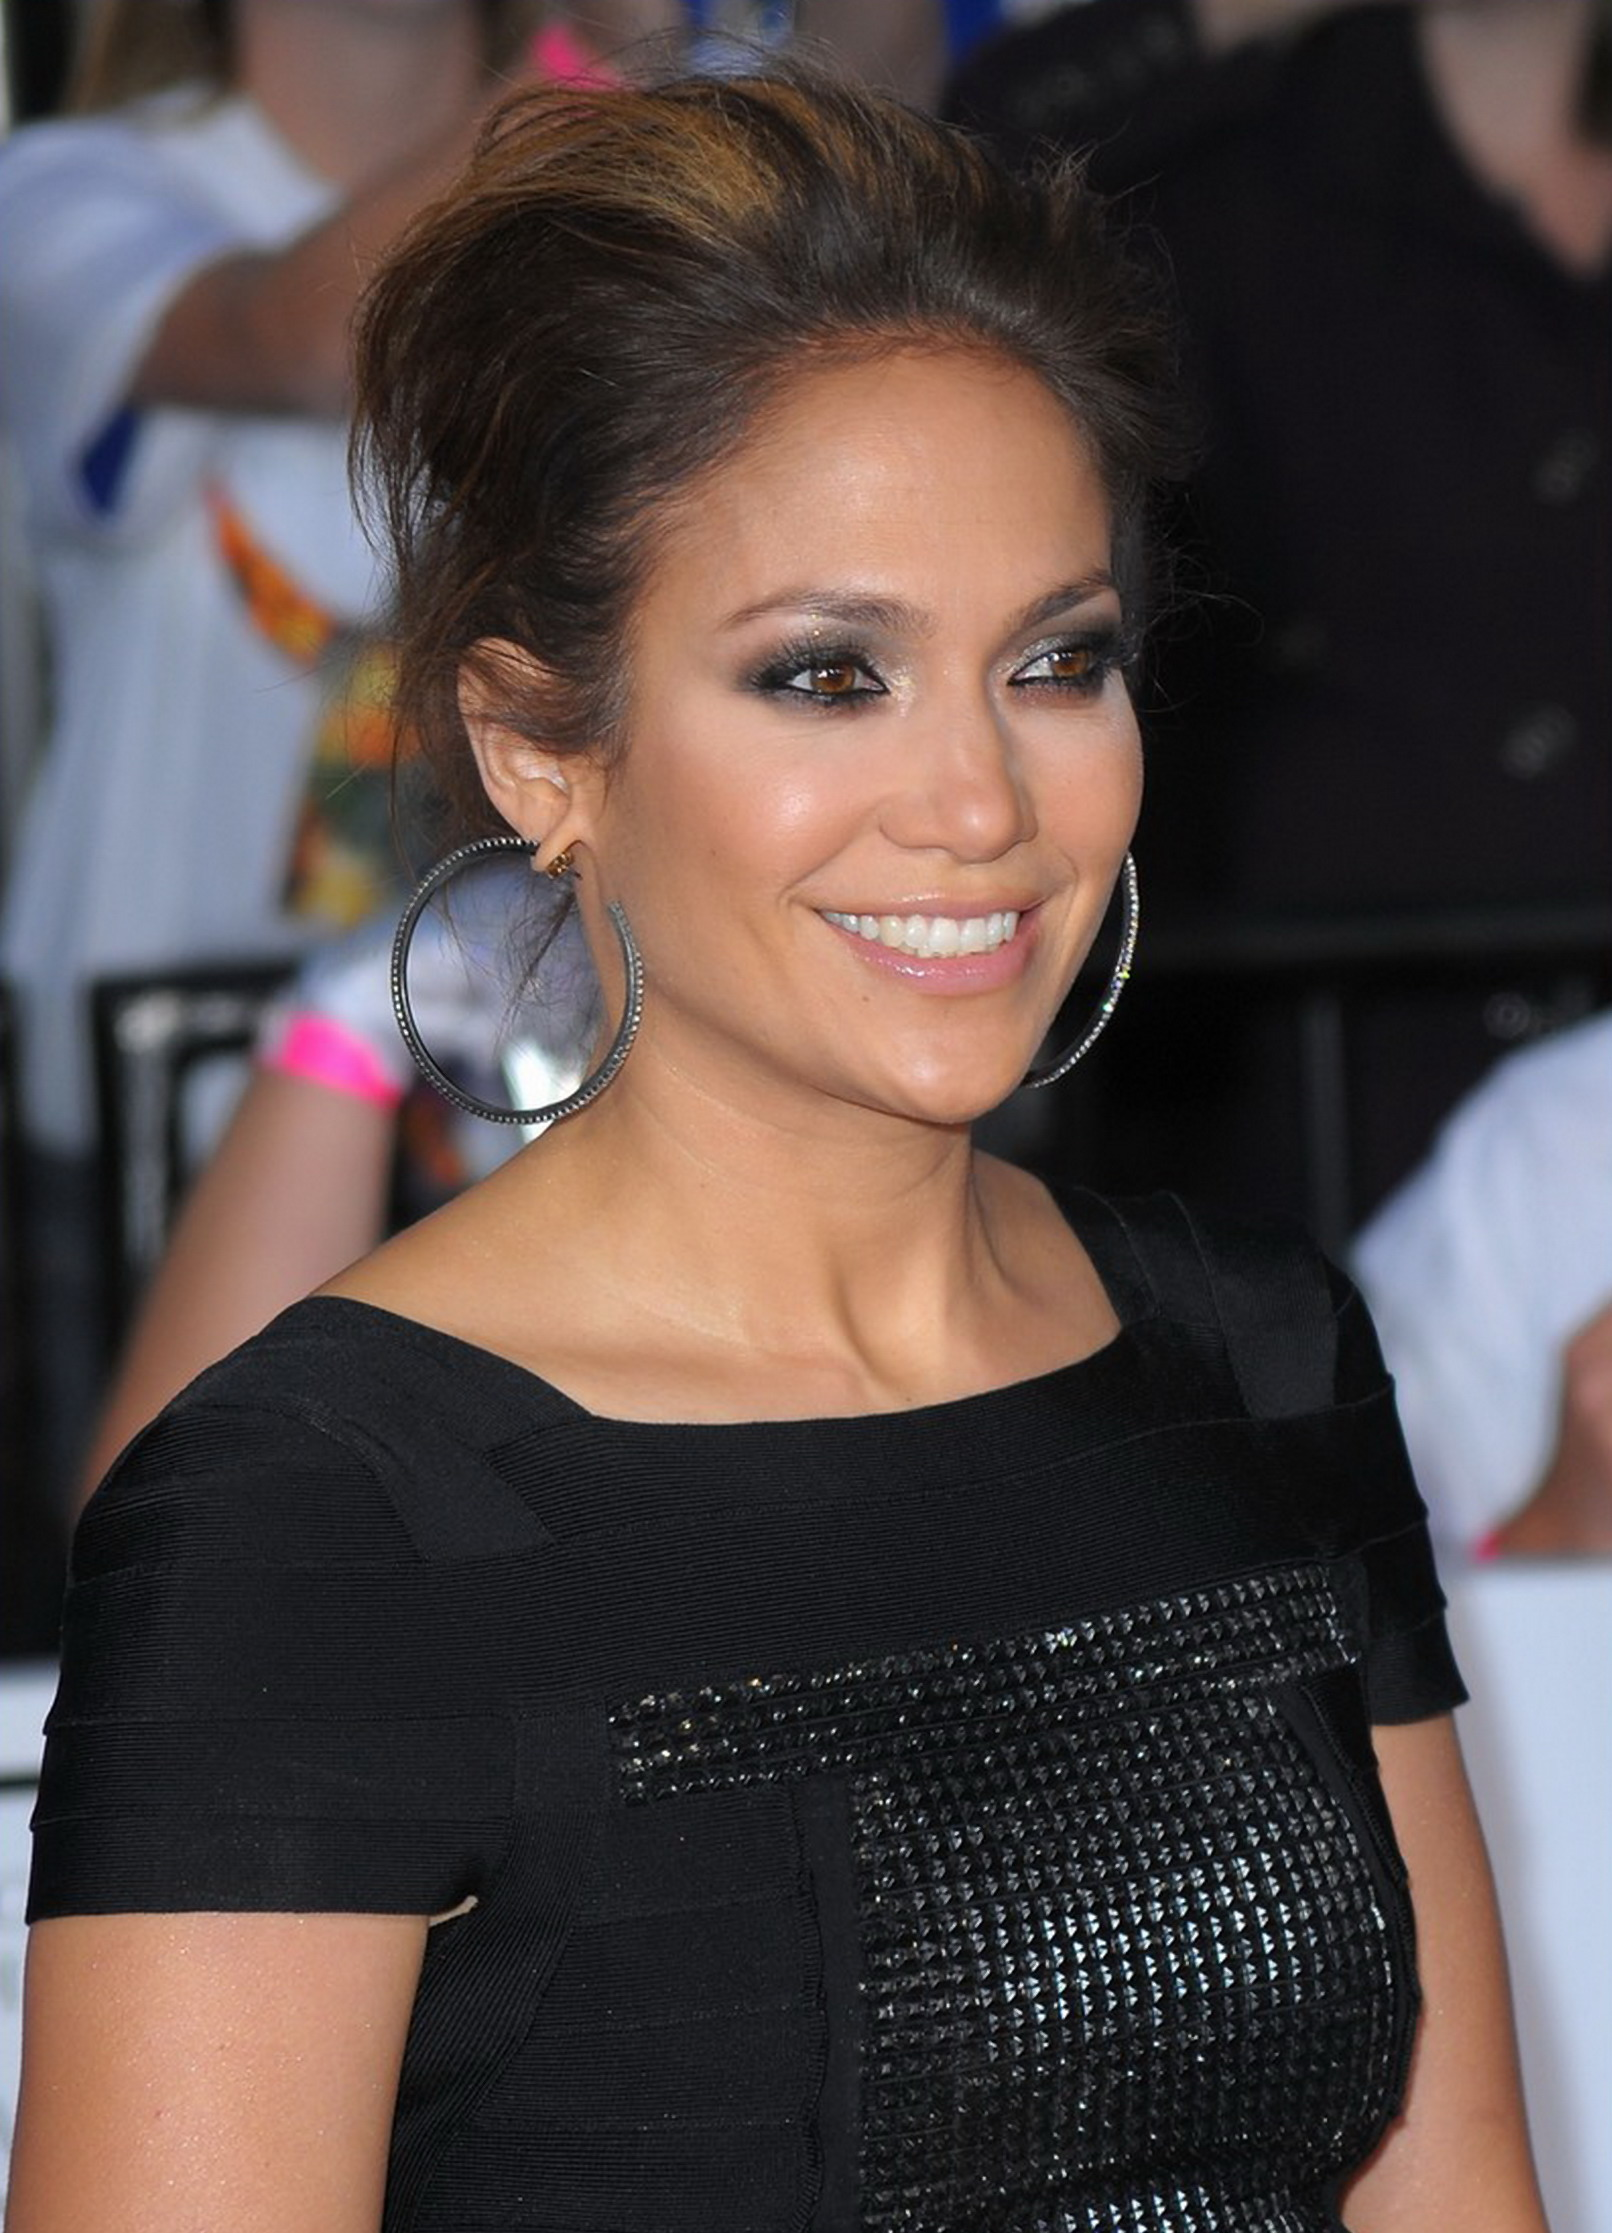 http://jennifer-lopezz.narod.ru/images/news/jennifer-lopez-this-is-it_11_11_2009_5.jpg